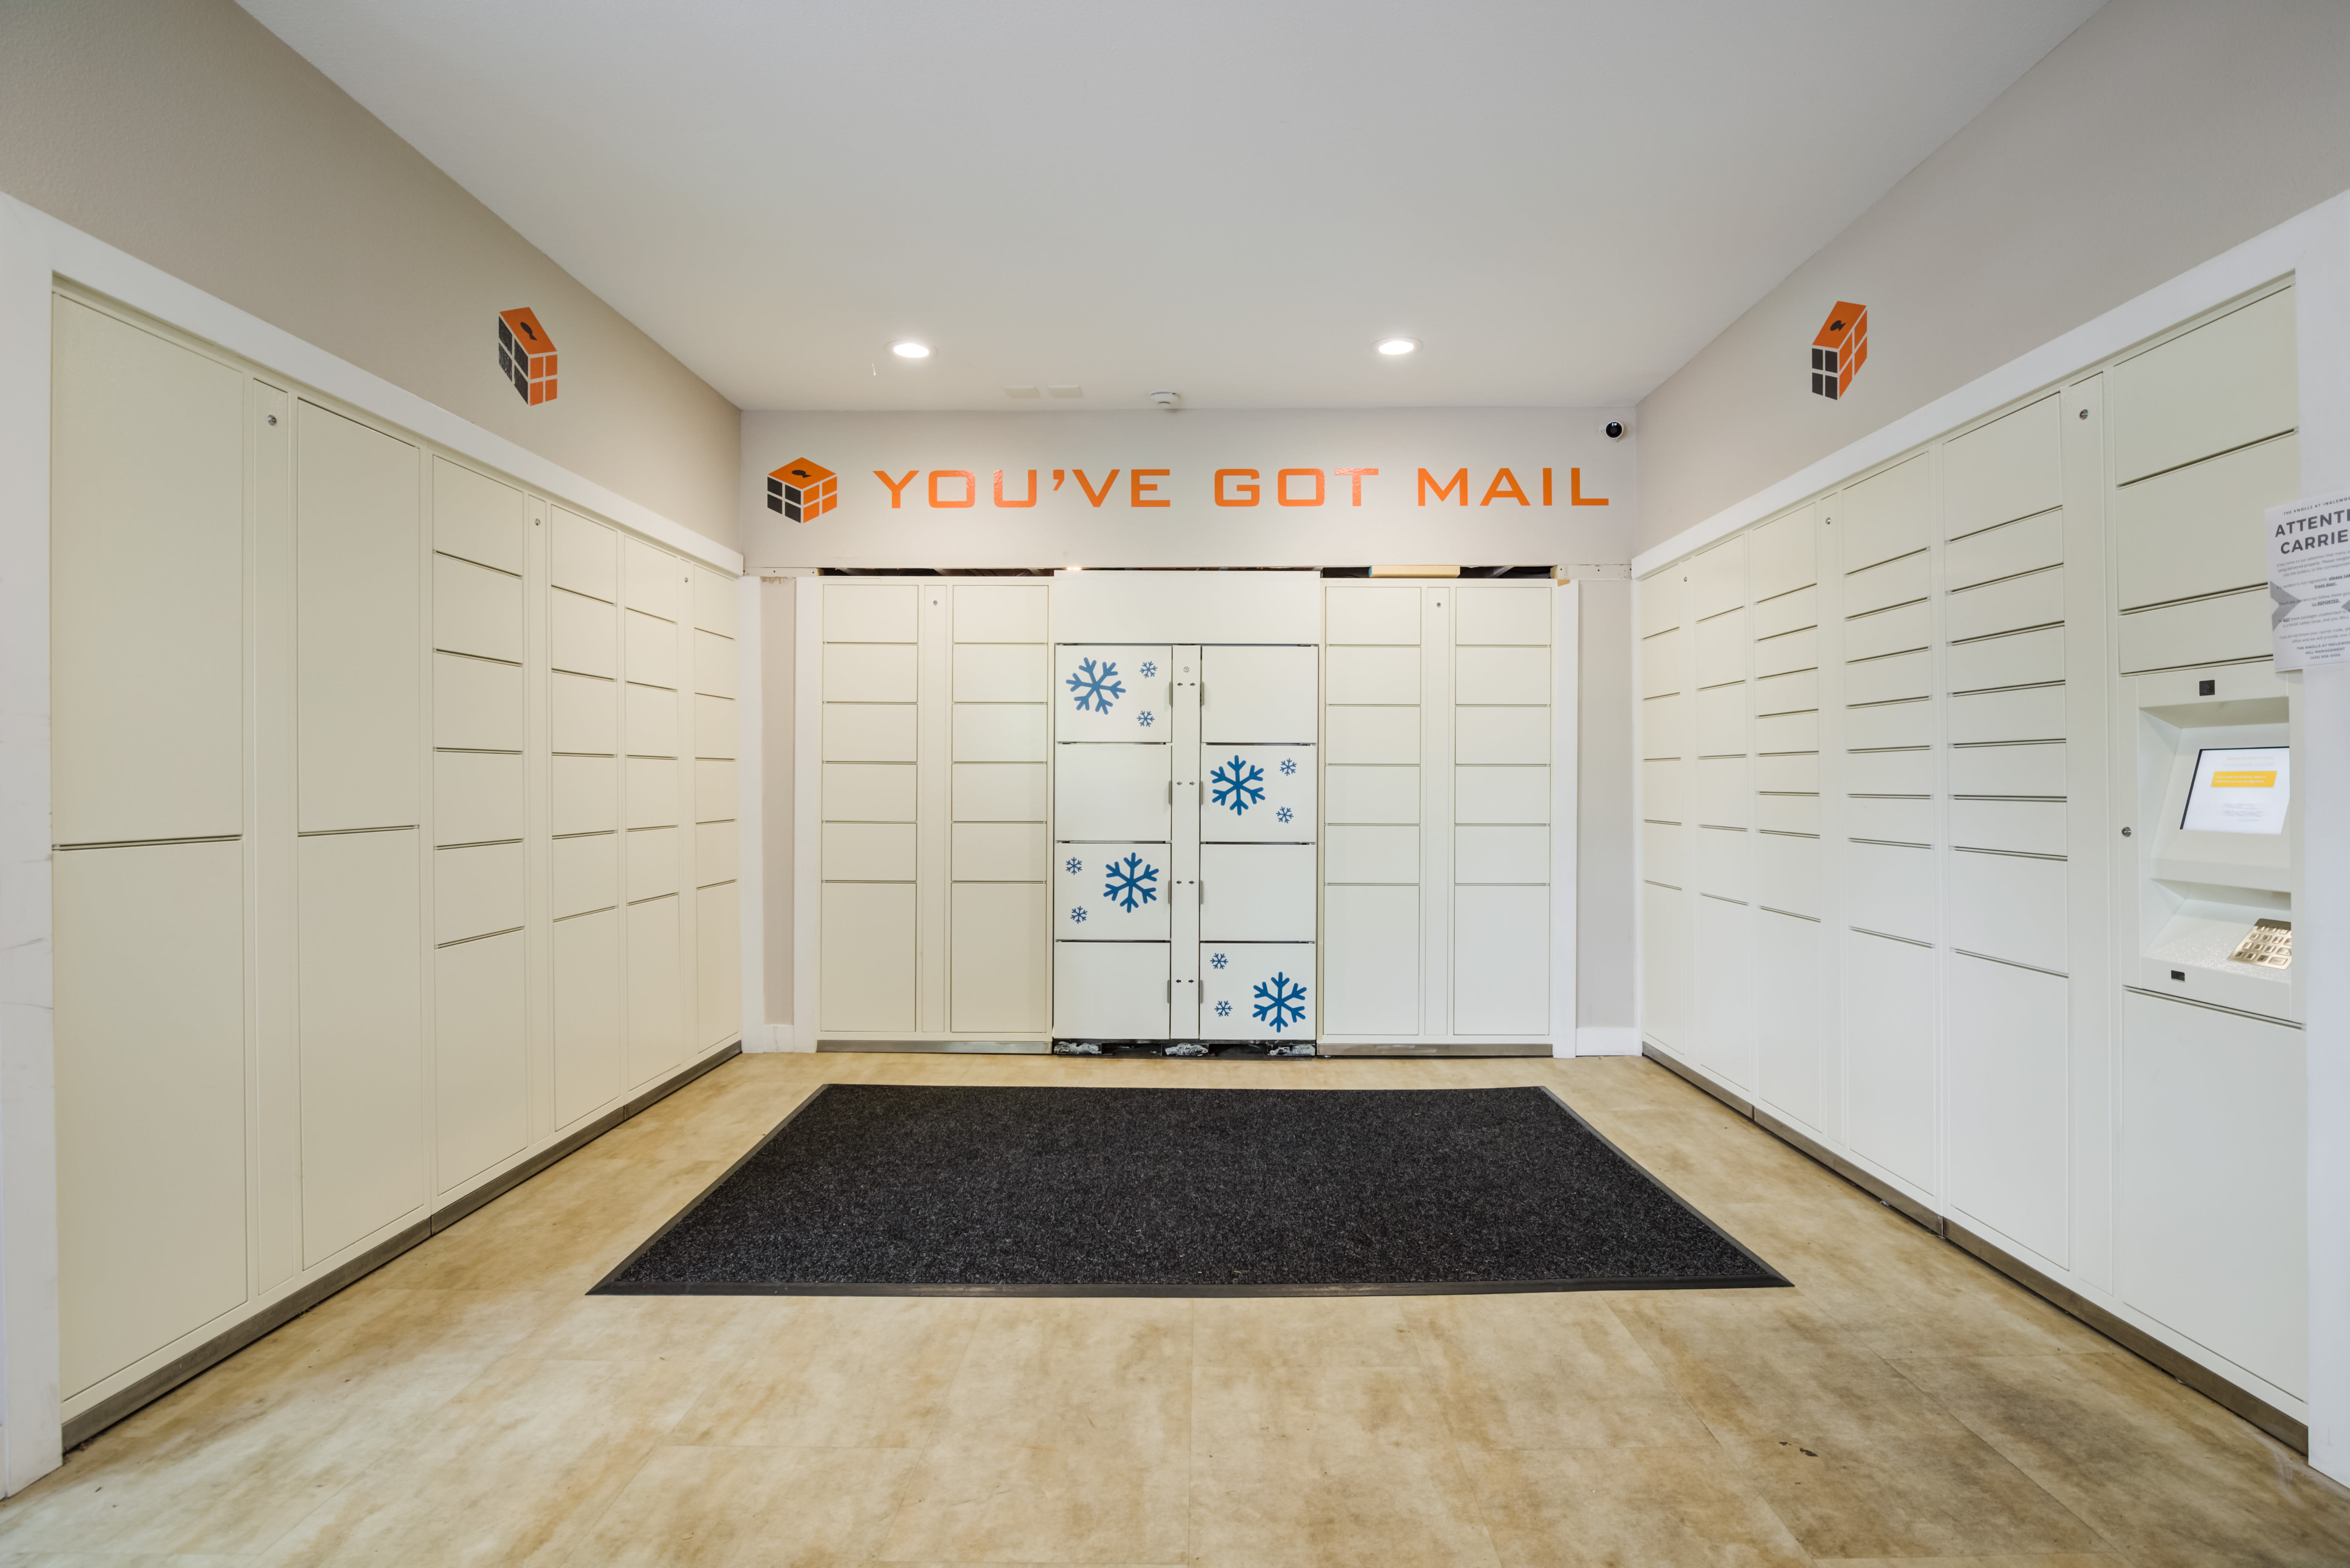 Mailroom and parcel pick up center at The Knolls at Inglewood Hill in Sammamish, Washington